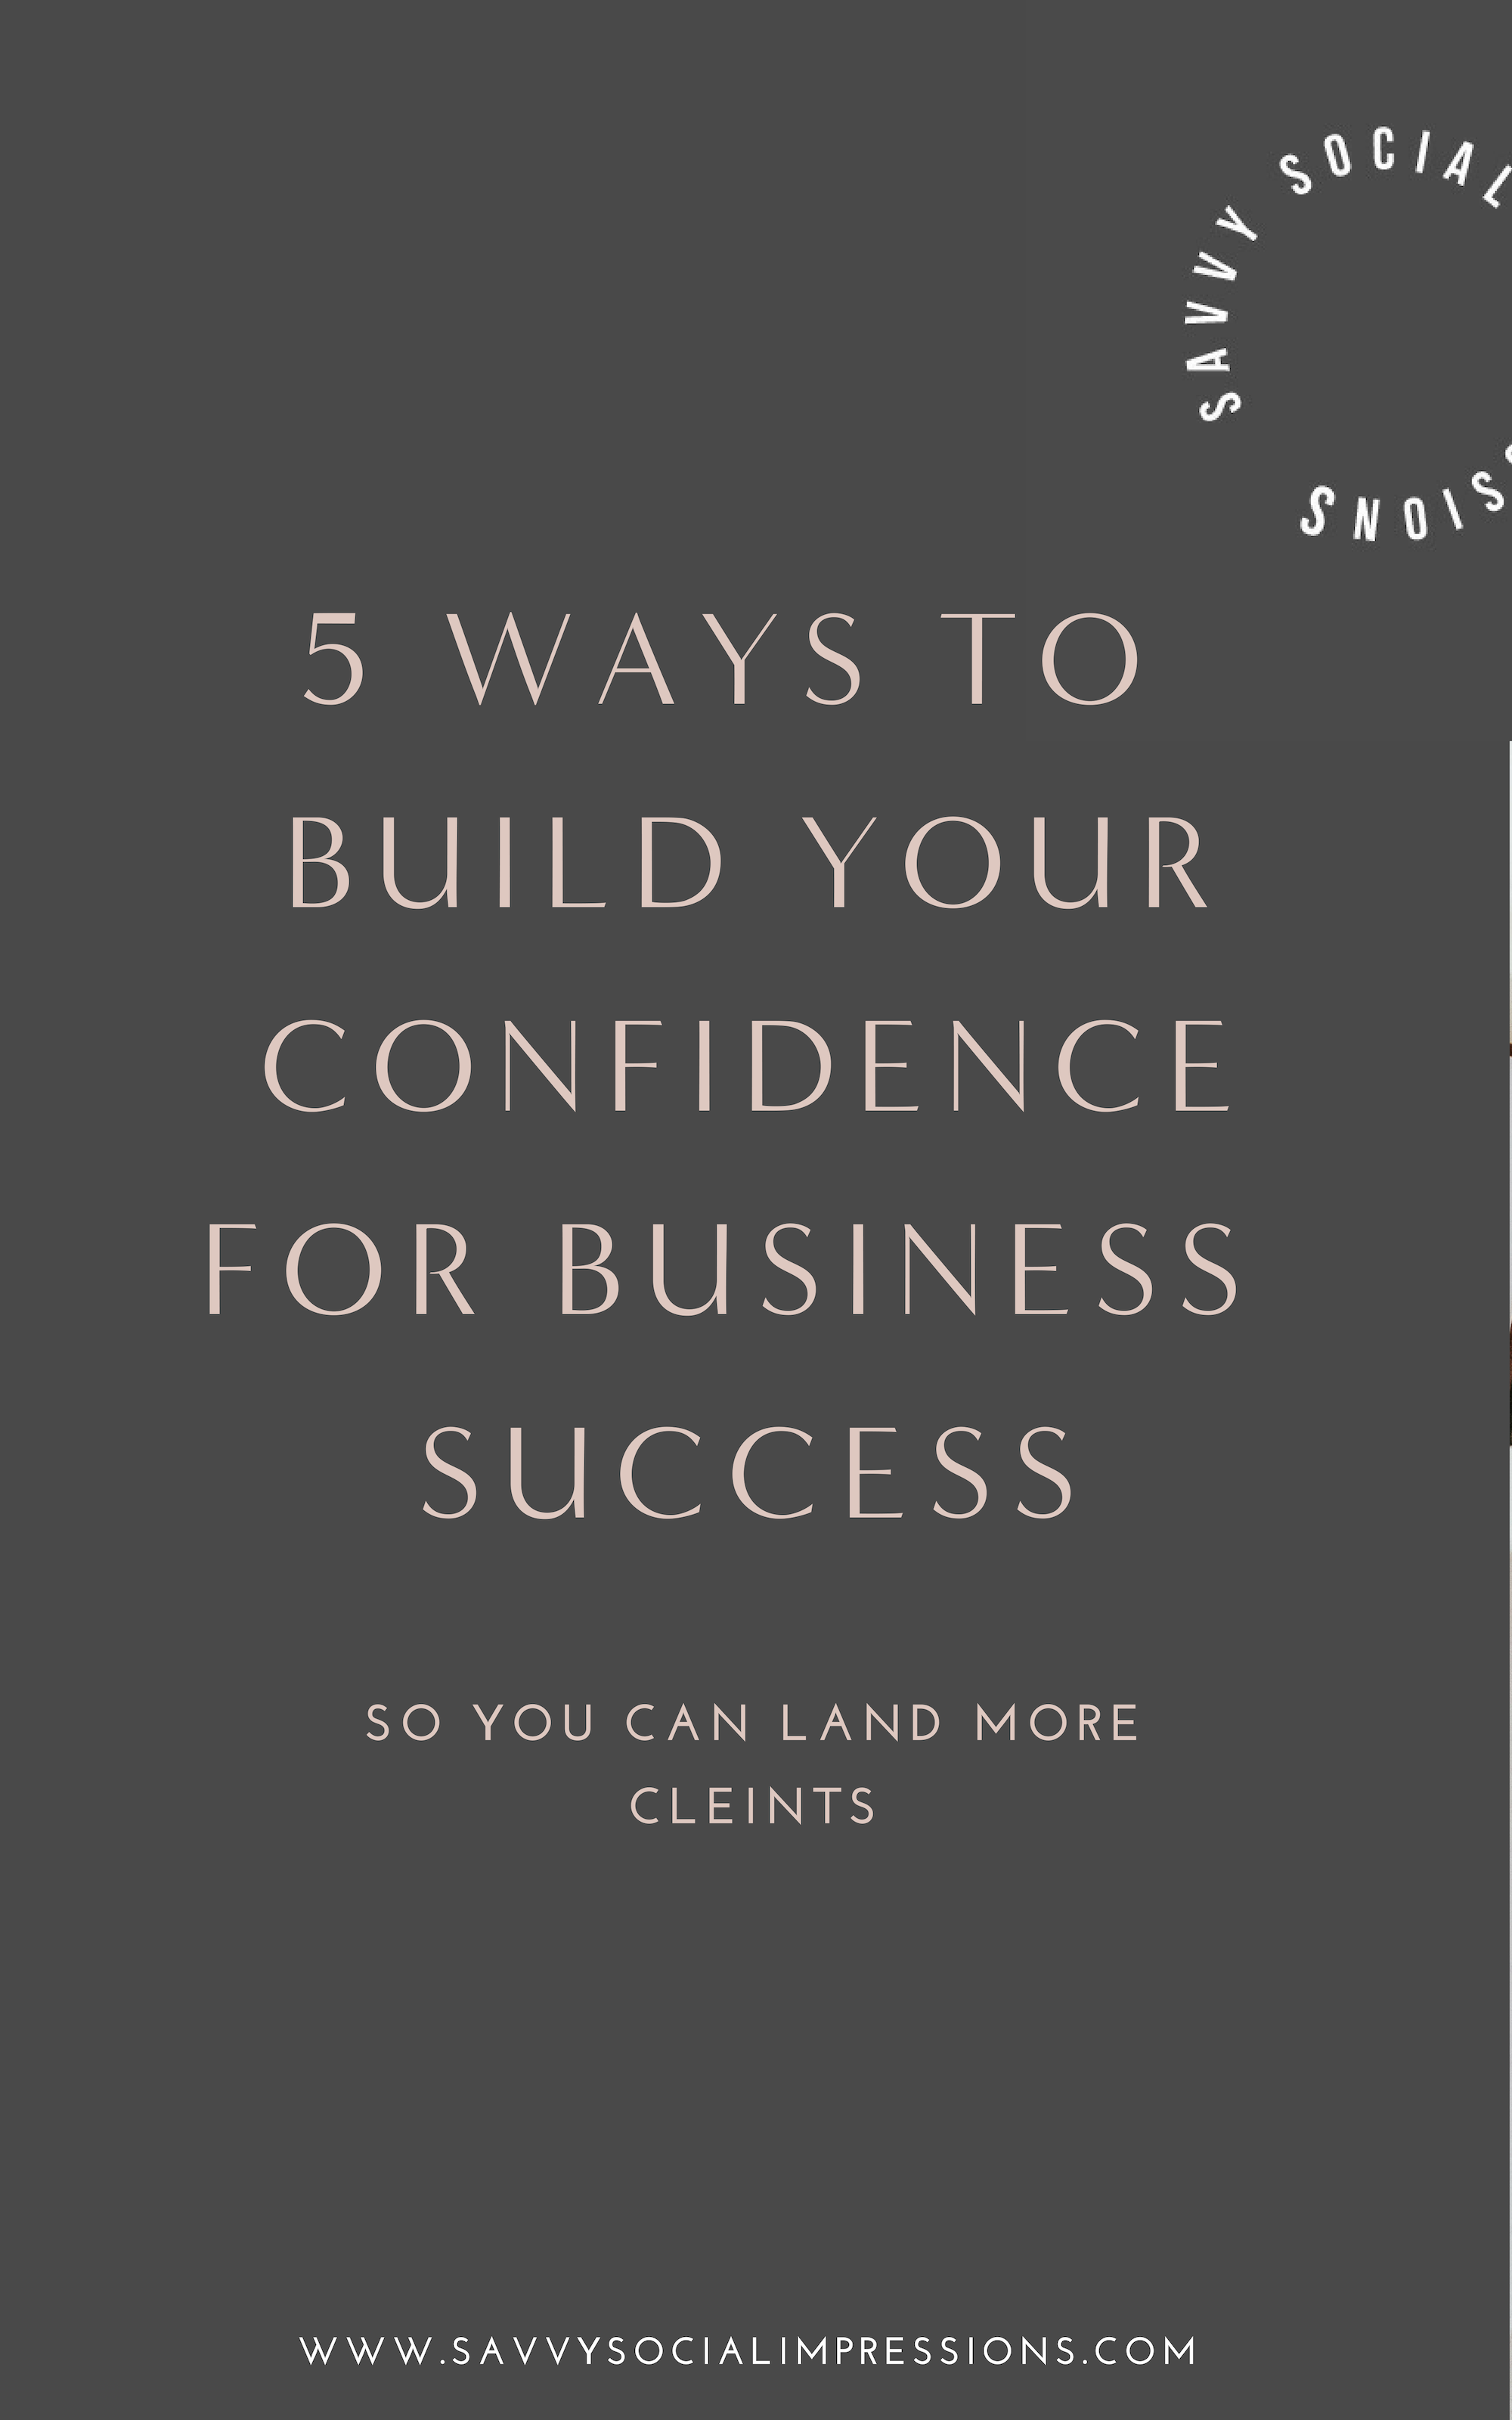 5 WAYS TO  BUILD YOUR CONFIDENCE FOR BUSINESS  SUCCESS.png